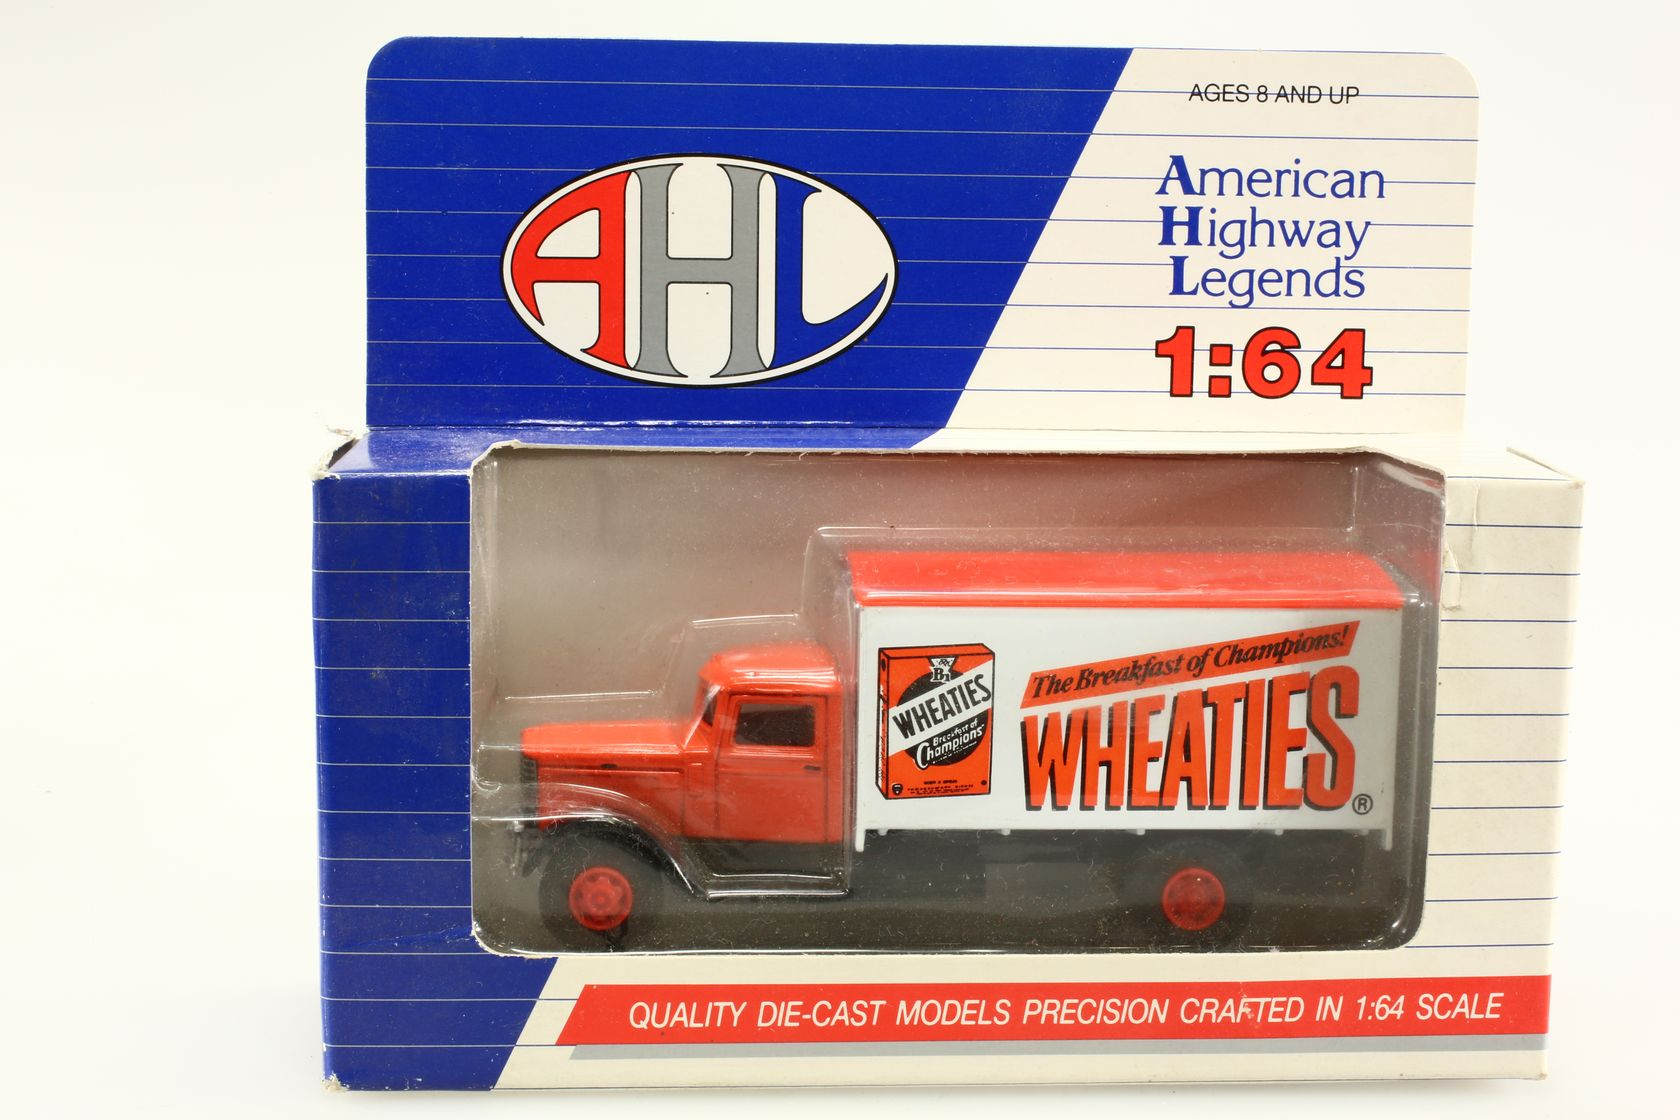 Ford F5 The breakfast of Champions Weatles 1/64